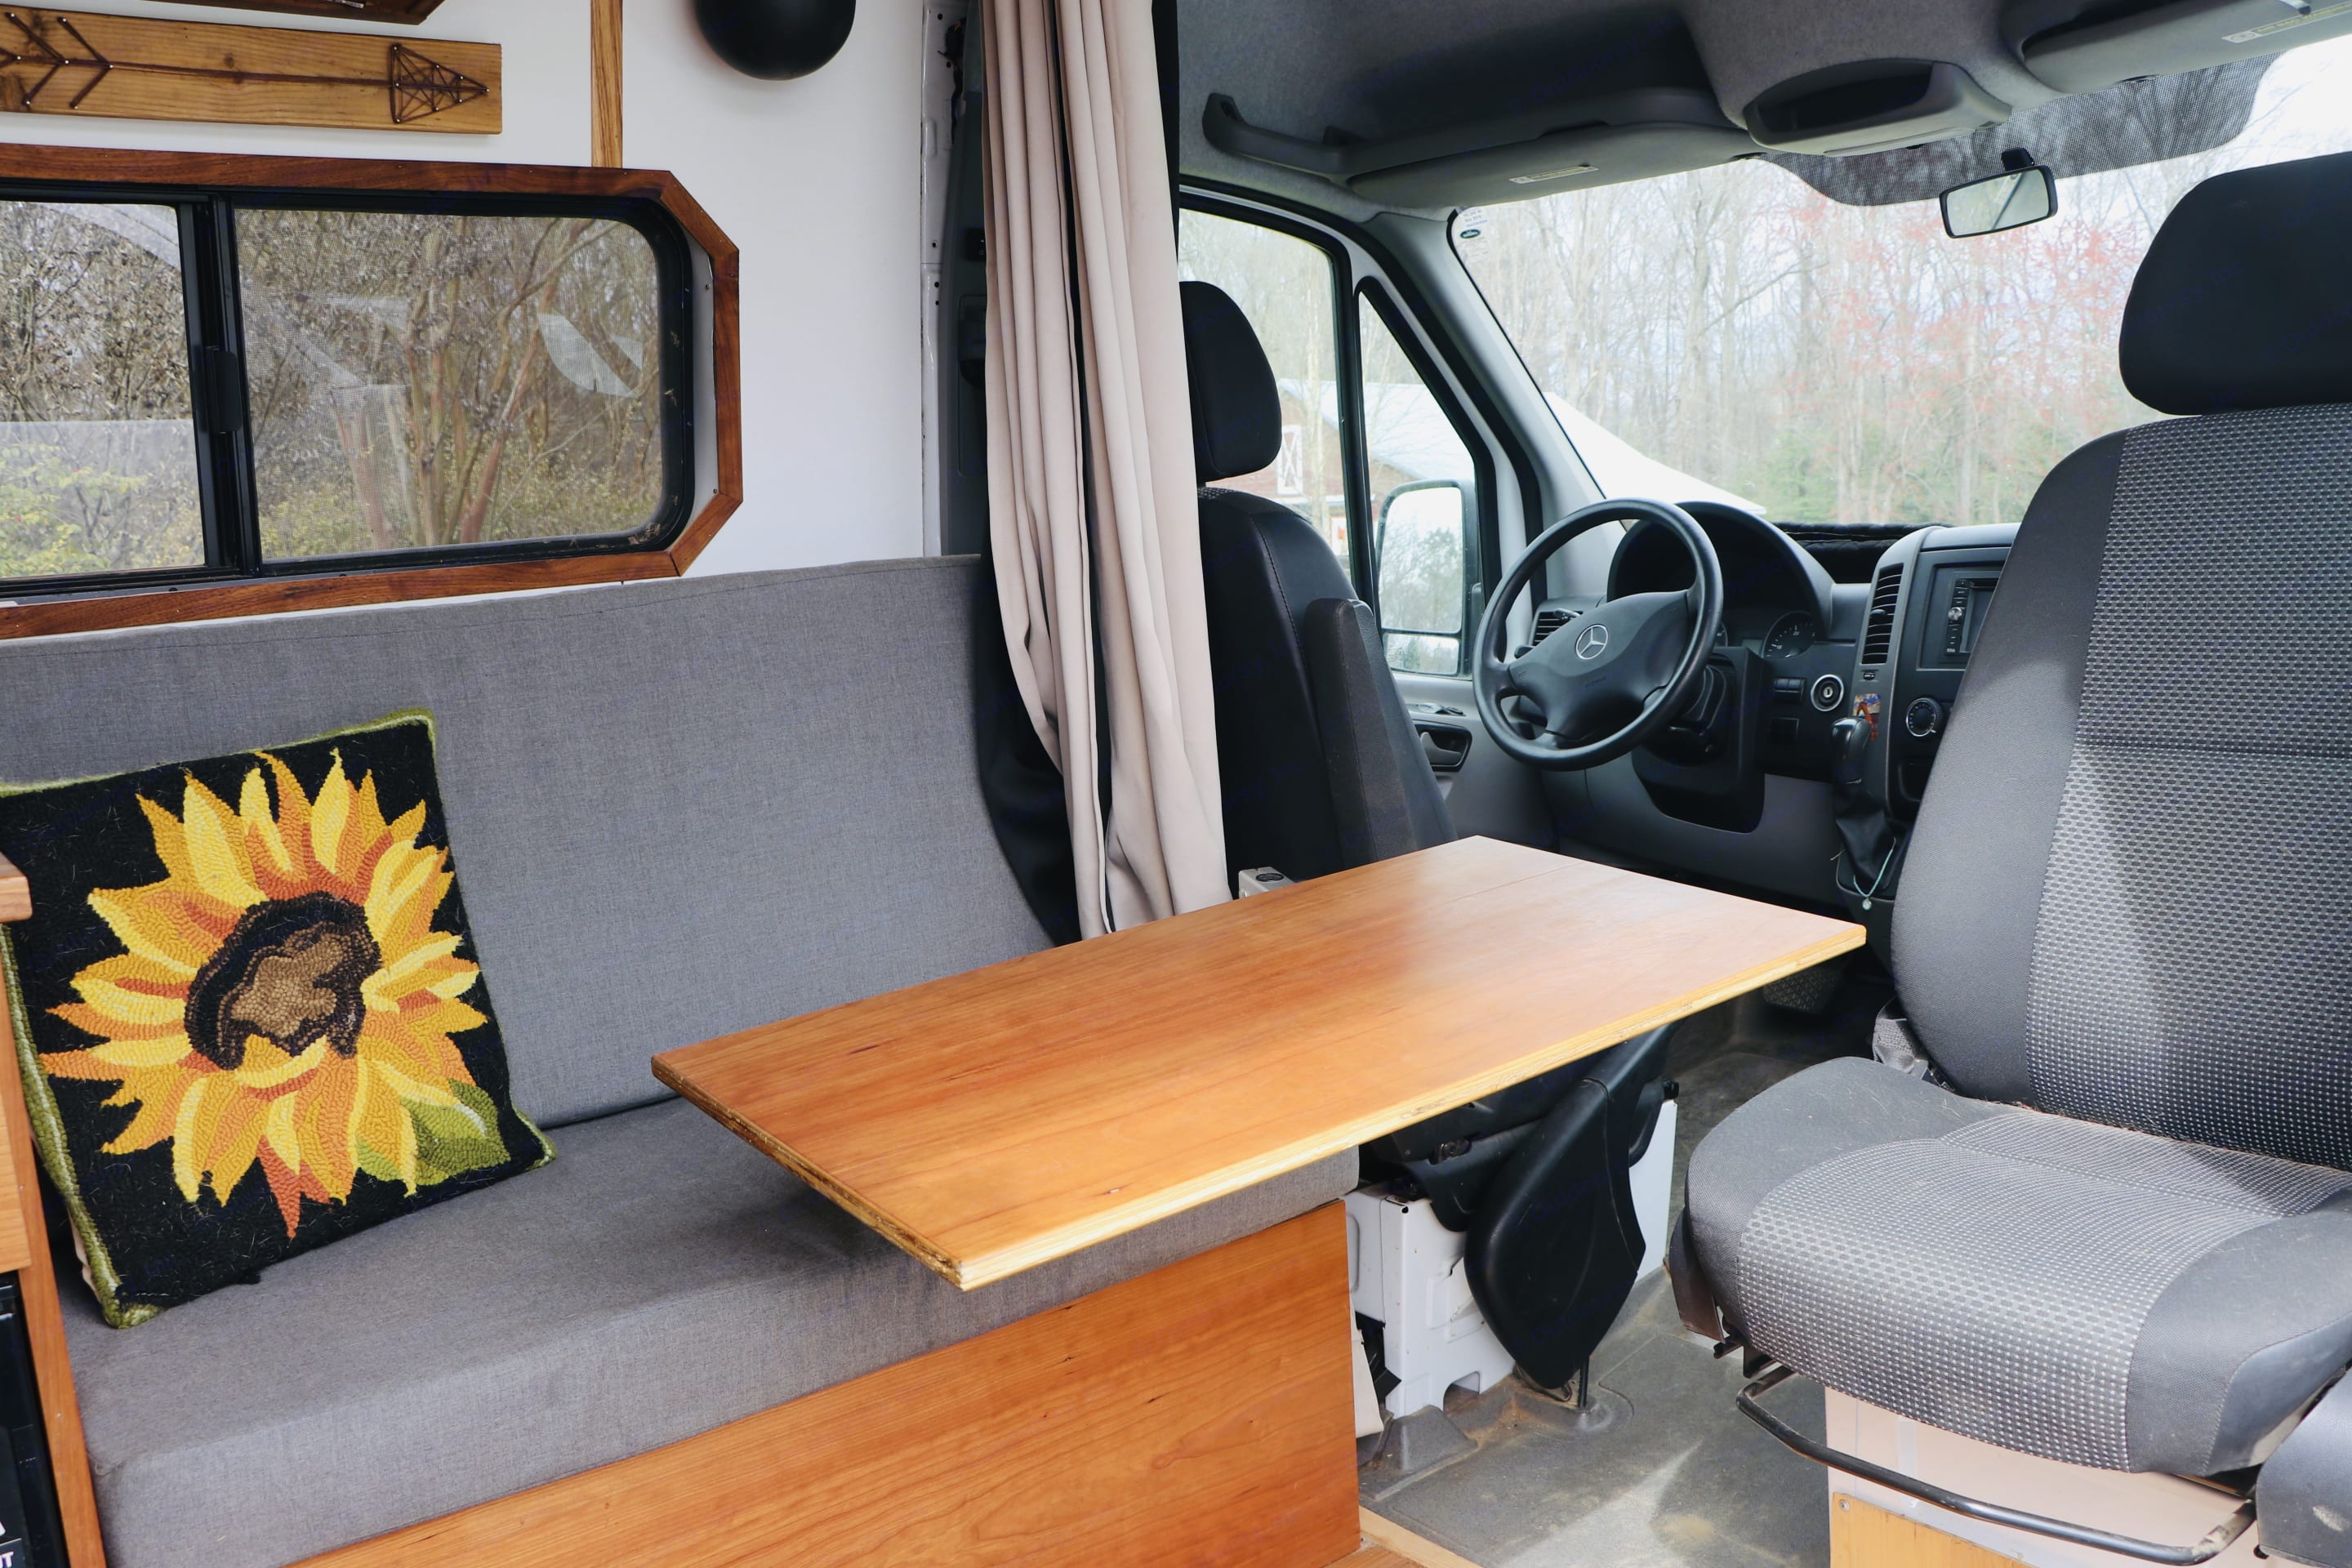 Removable table for dining, working, etc., sitting area accomodates 2-3 adults. Mercedes-Benz Sprinter 2013